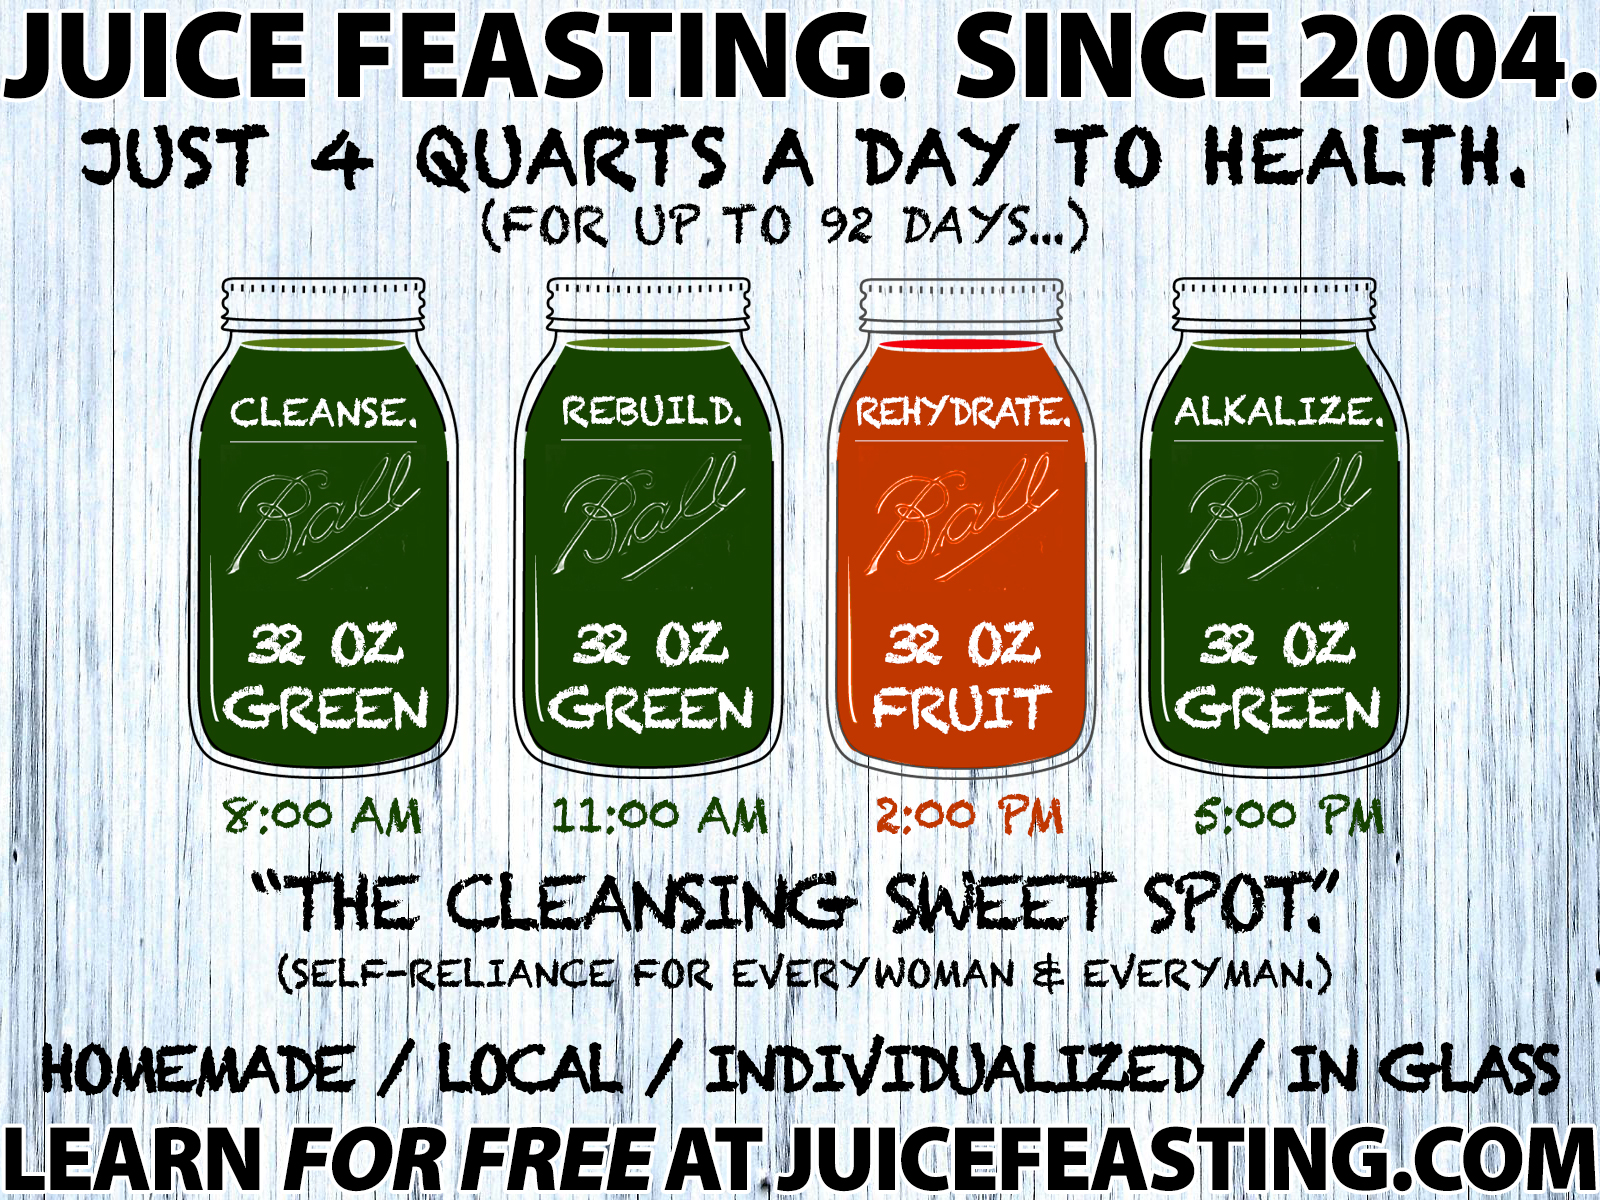 Juice-Feasting---4-Quarts-a-Day-to-Health.jpg